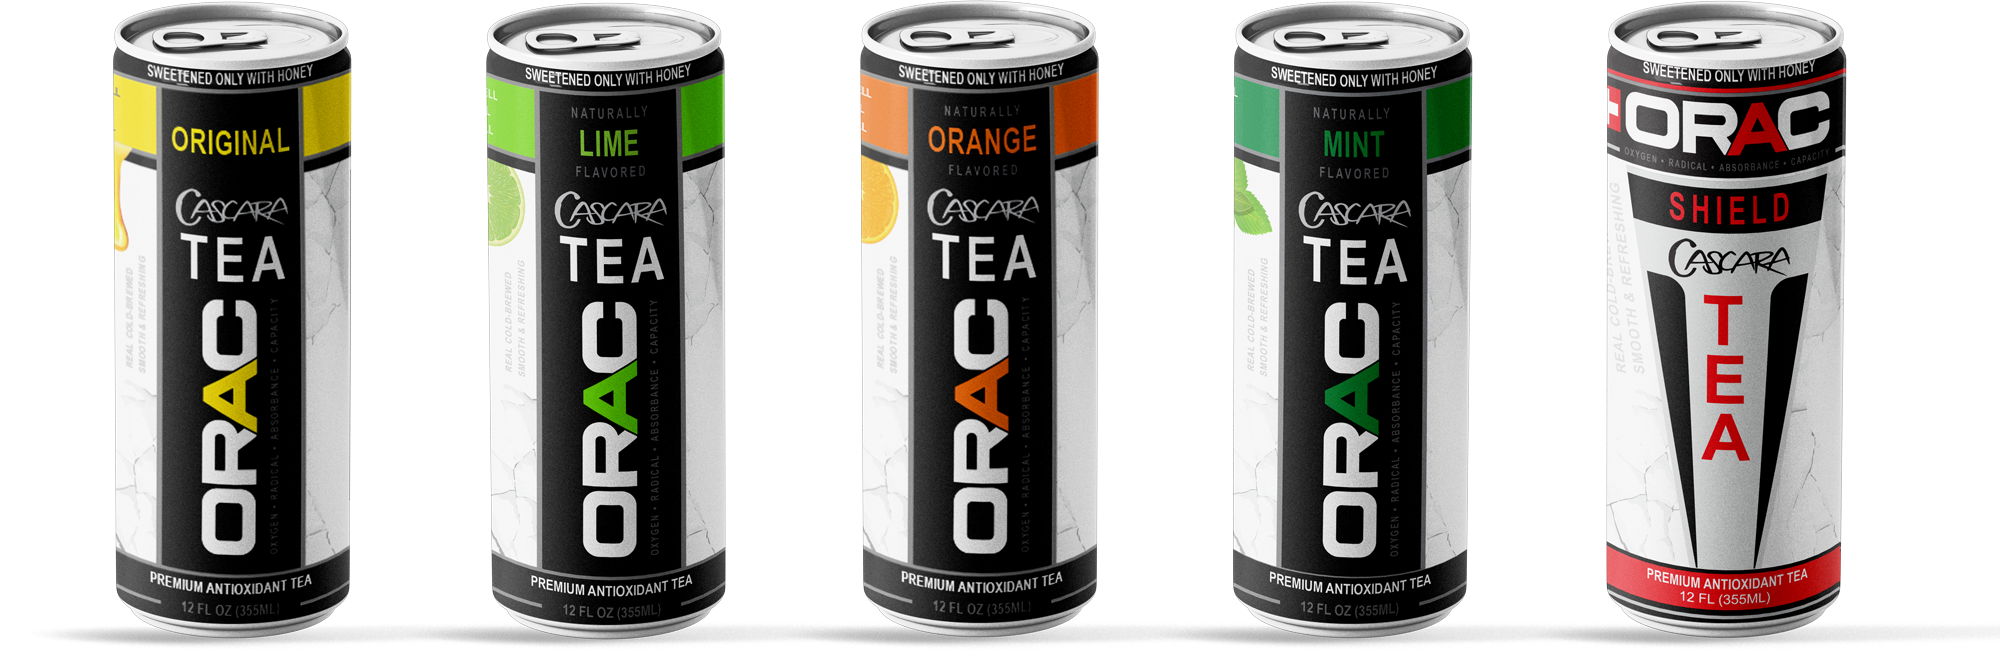 Our line of ORAC Teas; Original, Lime, Orange, Mint, Shield